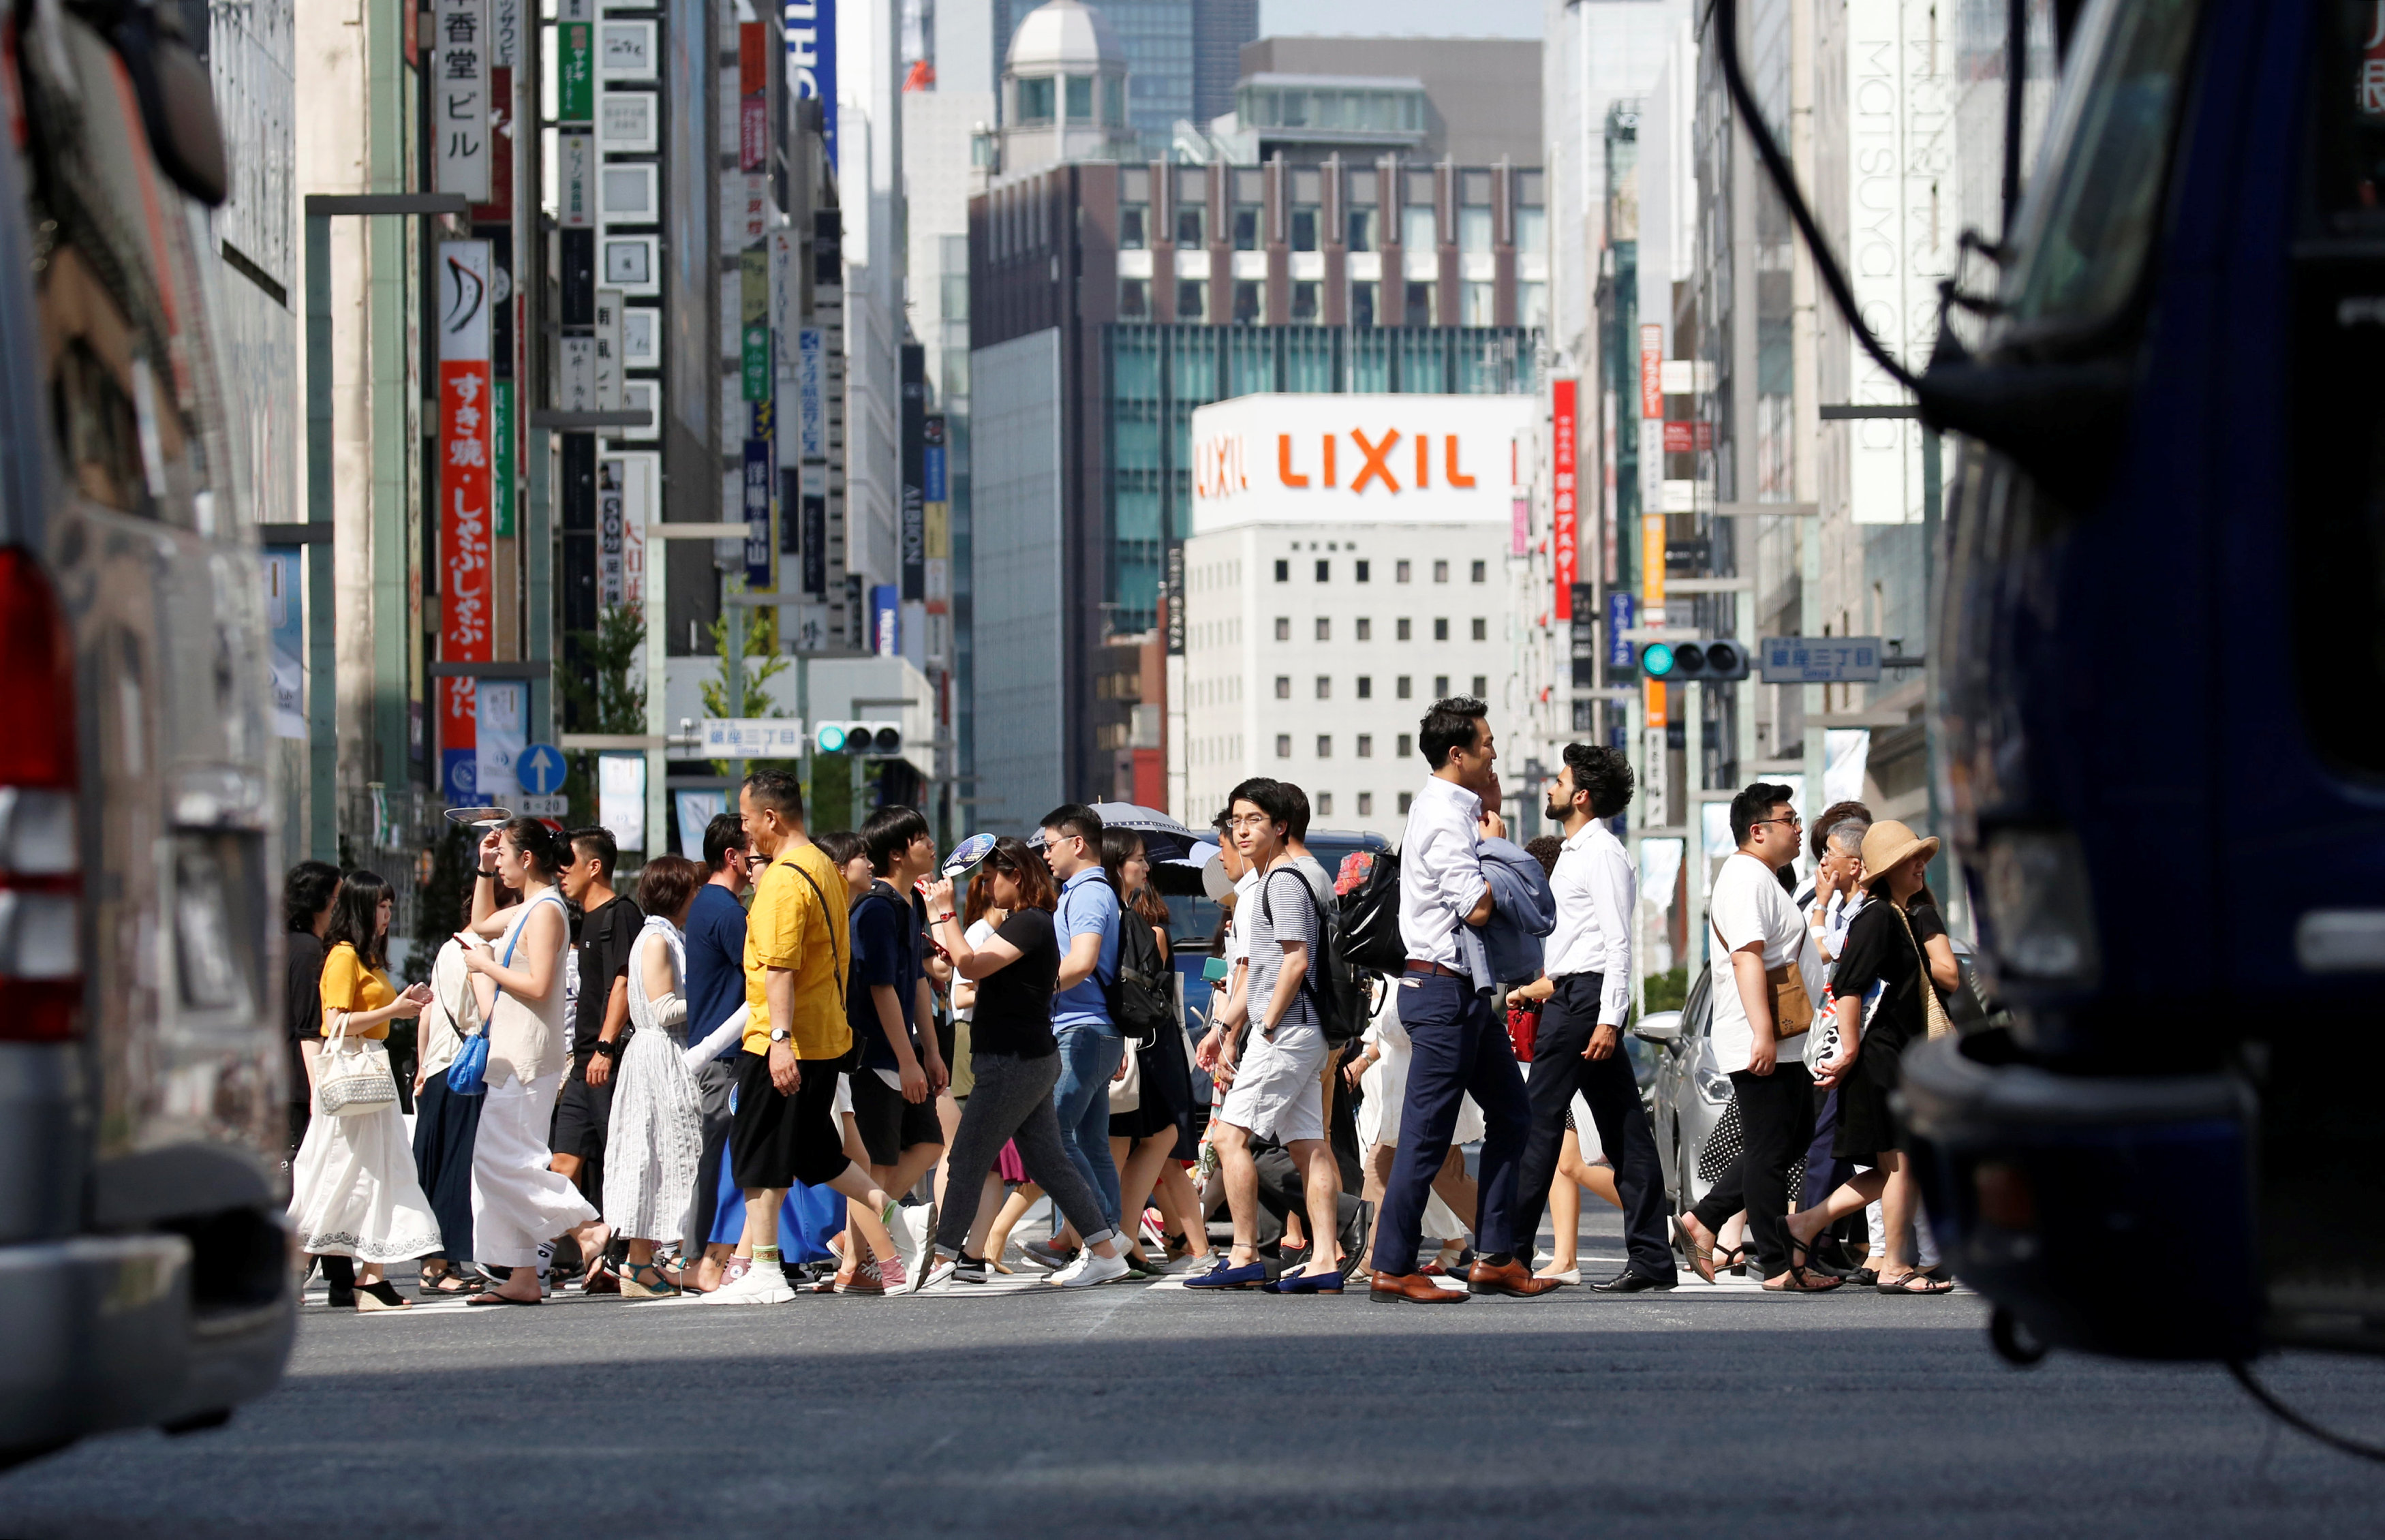 Japan crowded intersection in summer heatwave